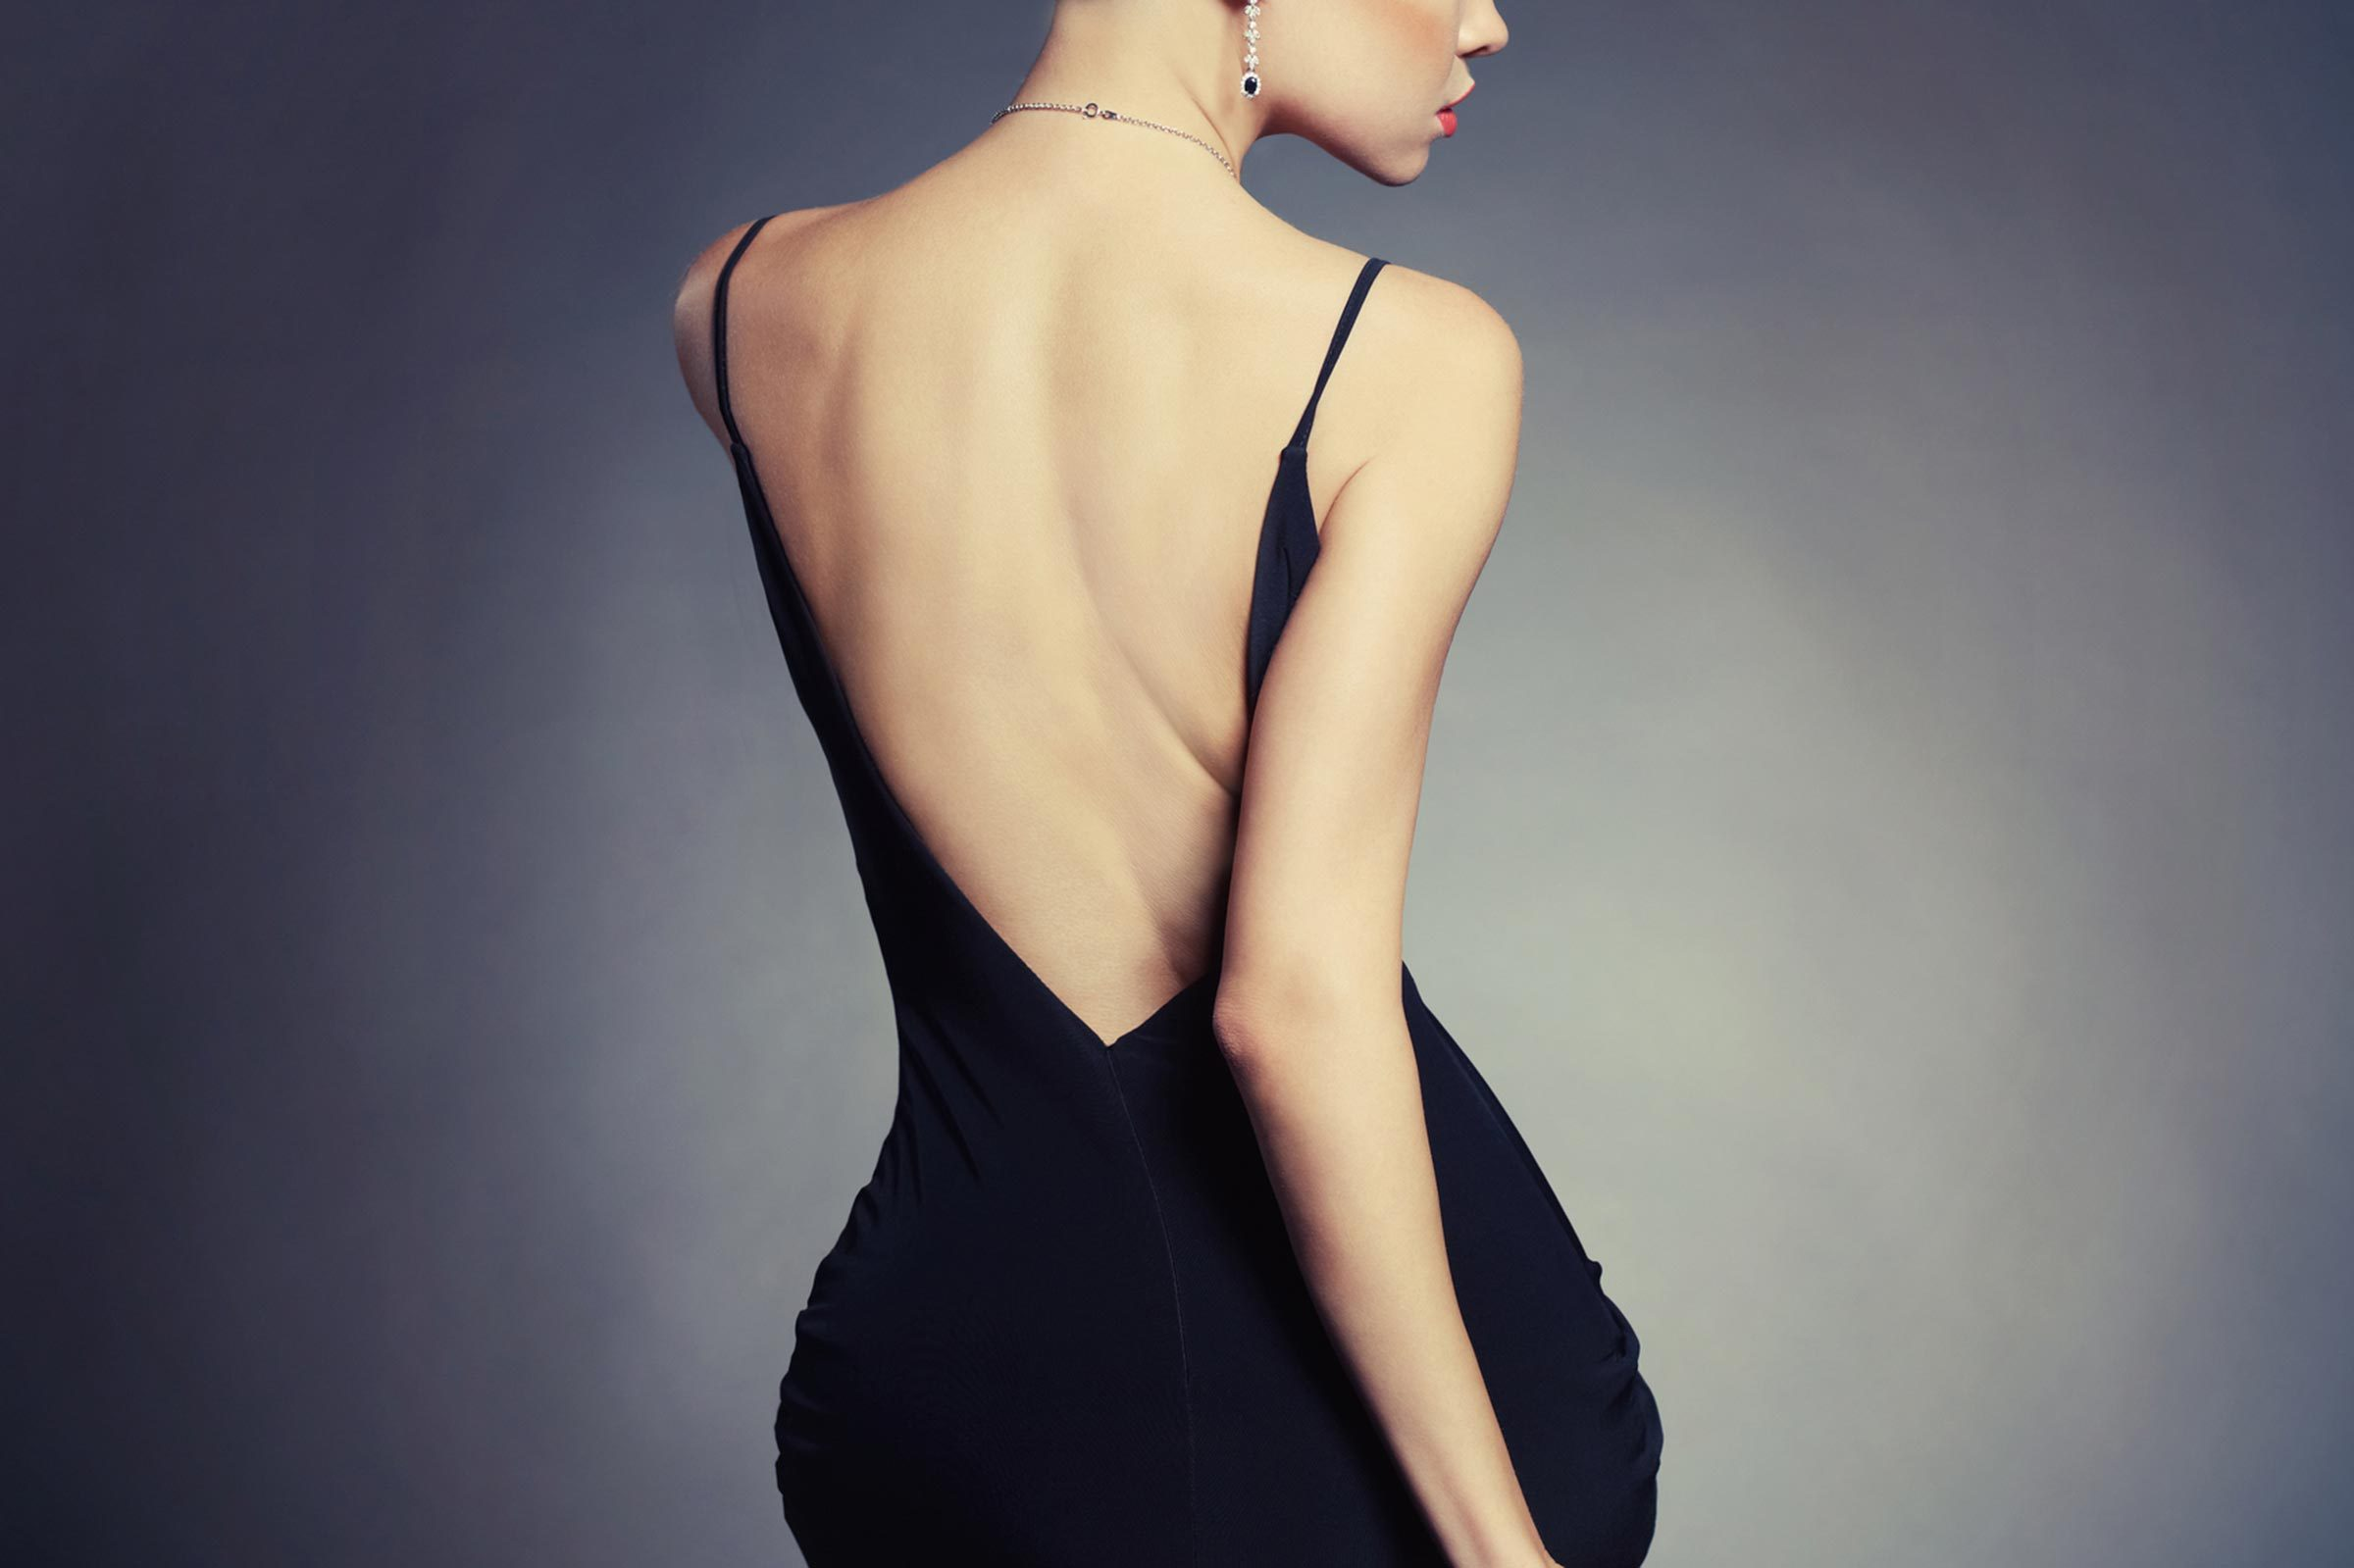 05-back-types-of-dresses-body-part-161910098-egorr